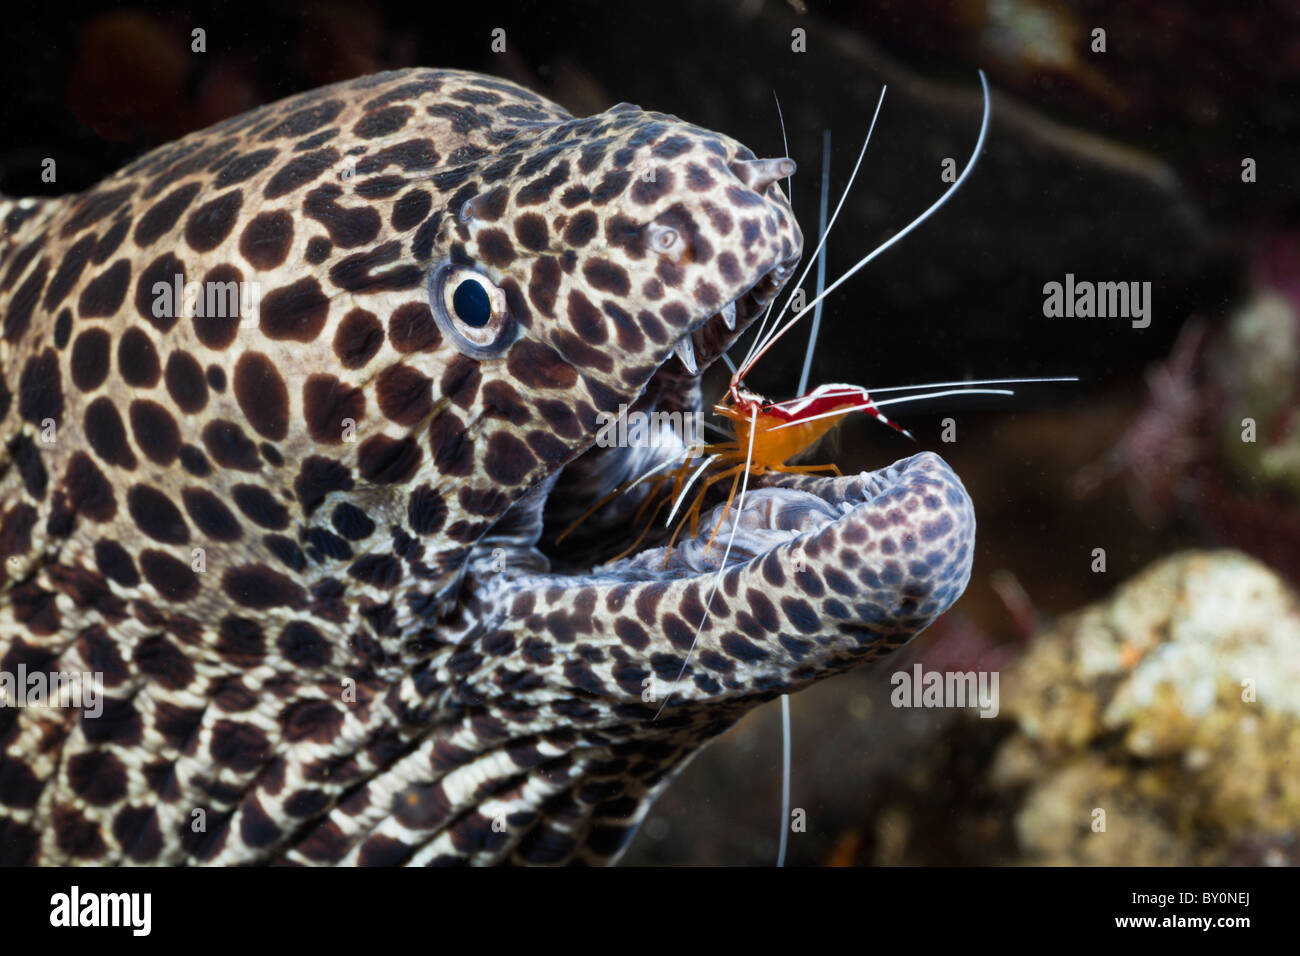 Honeycomb Moray cleaned by white-banded Cleaner Shrimp, Lysmata amboinensis, Gymnothorax favagineus, Alam Batu, - Stock Image